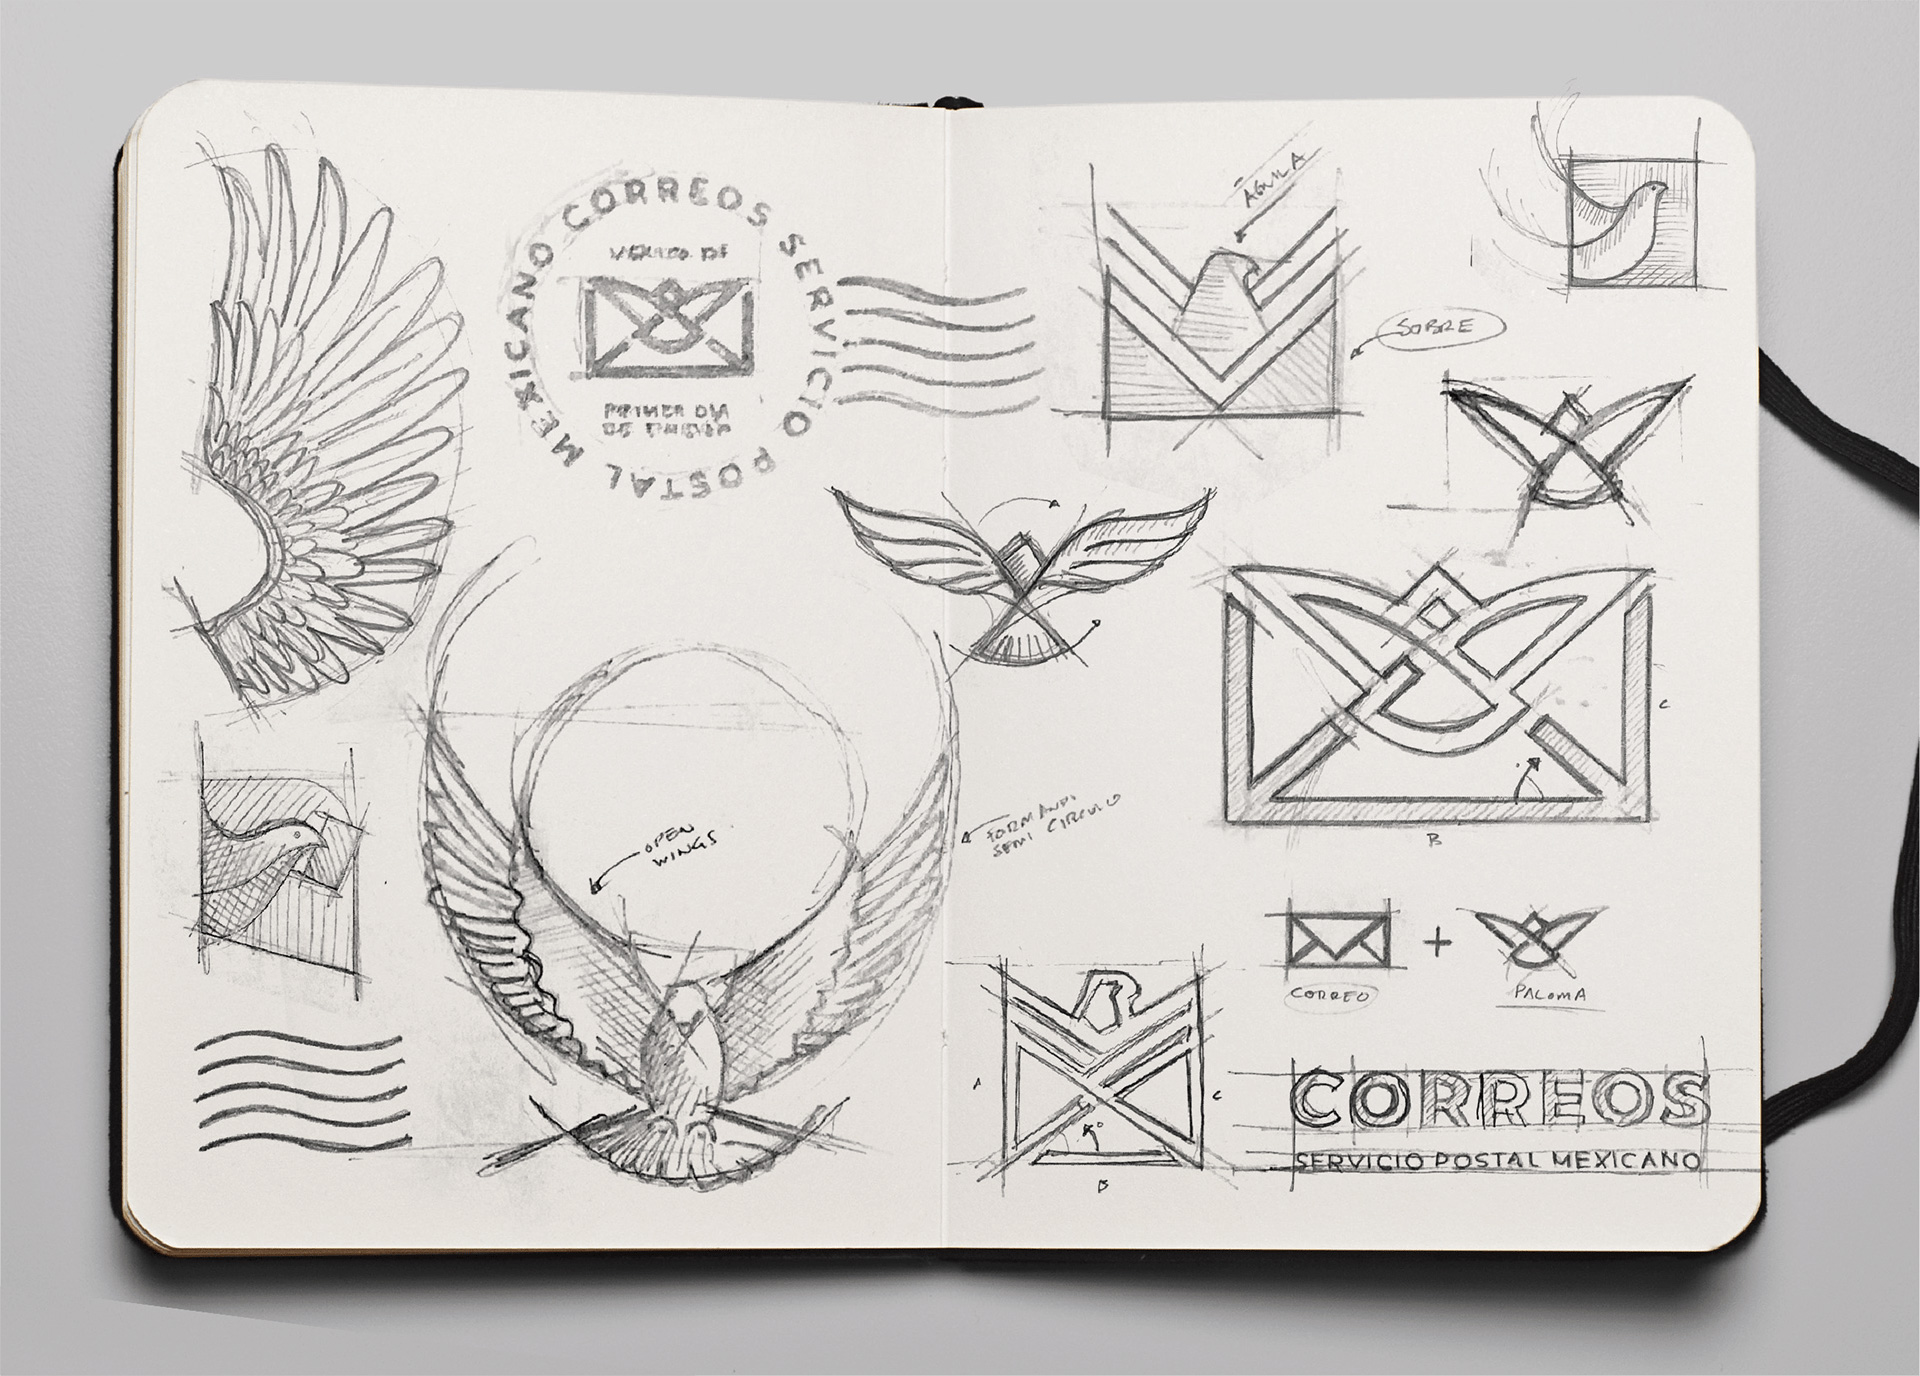 New Logo and Identity for Correos de México by Carl Forsell